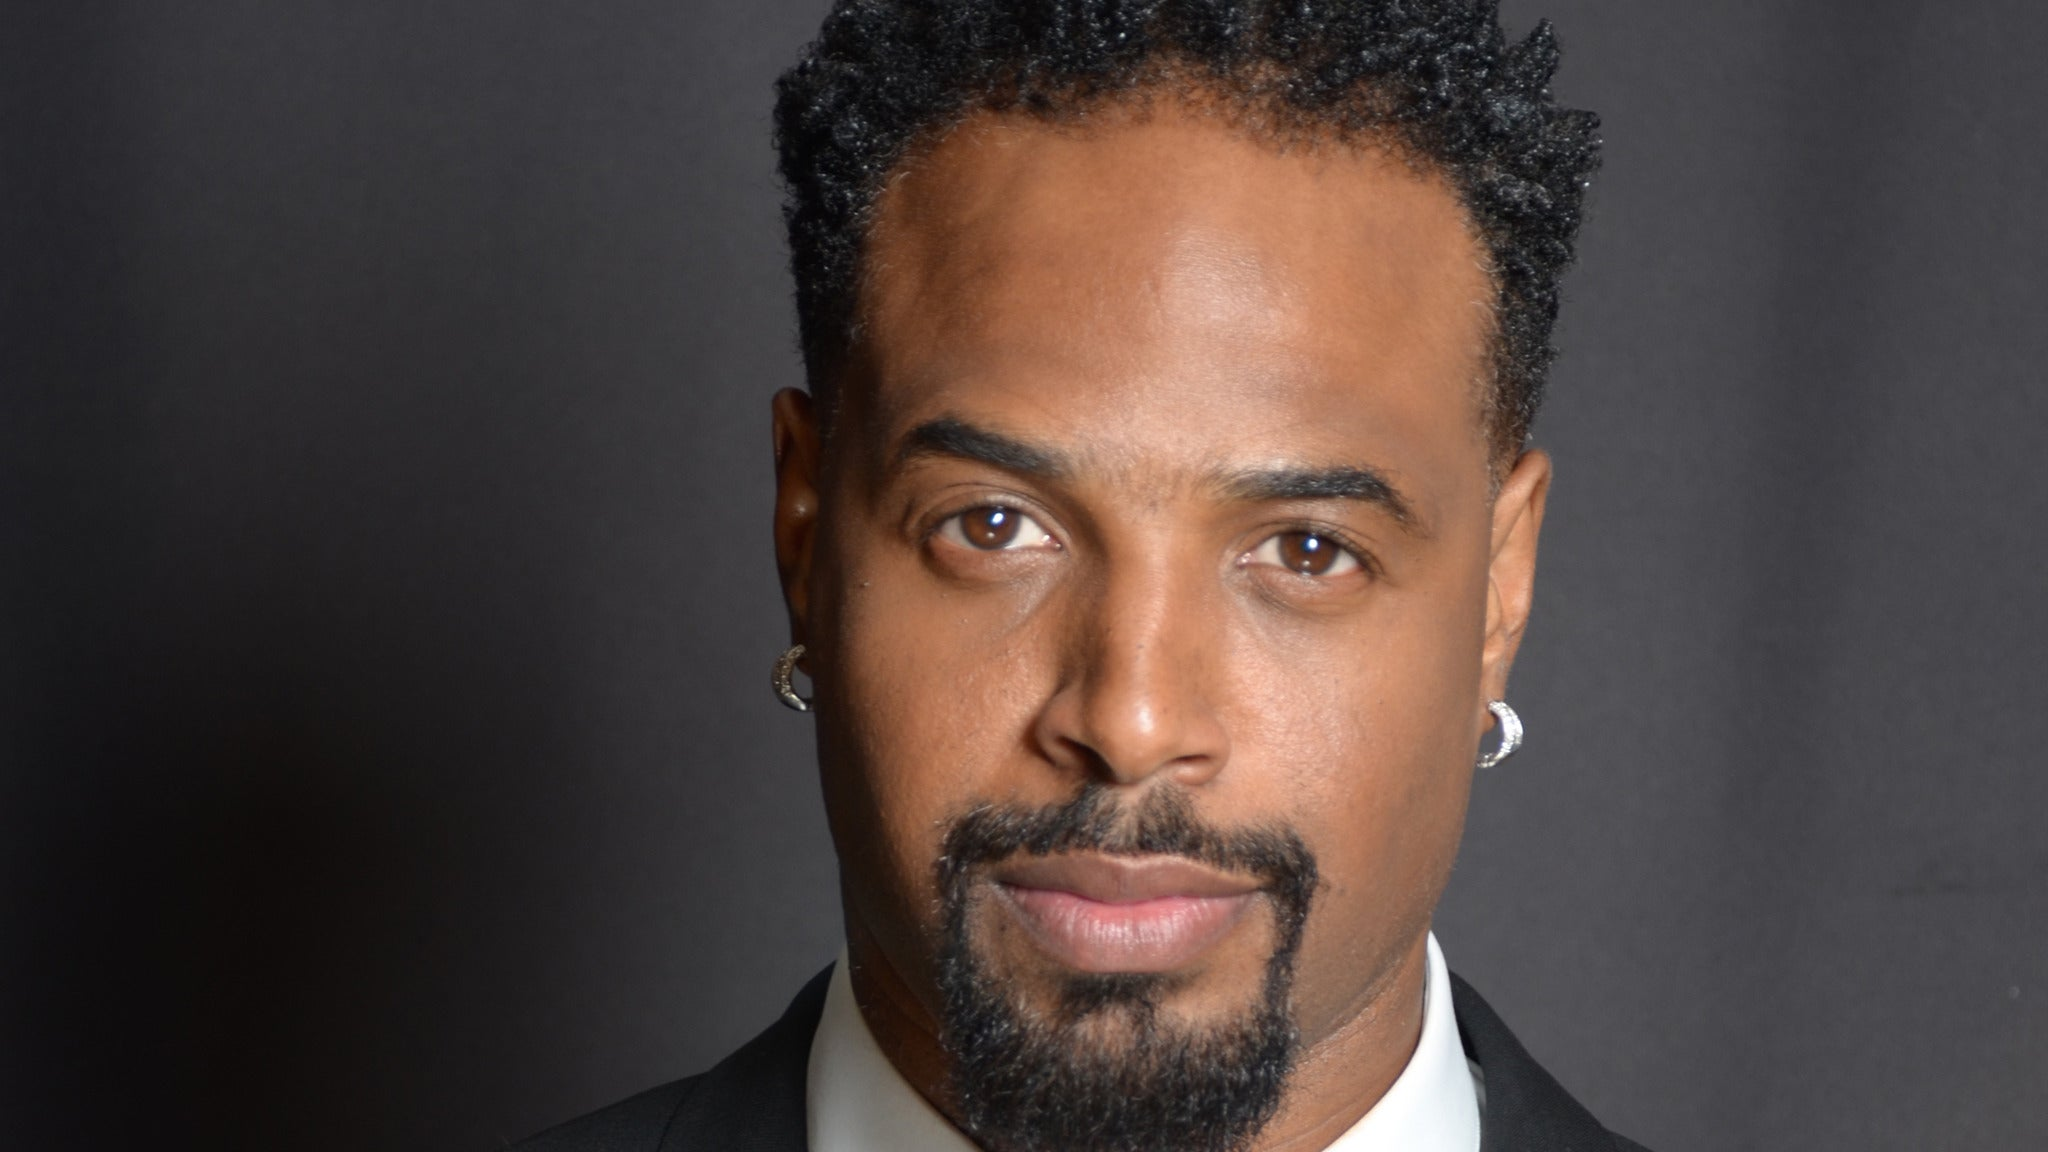 Shawn Wayans at Oxnard Levity Live